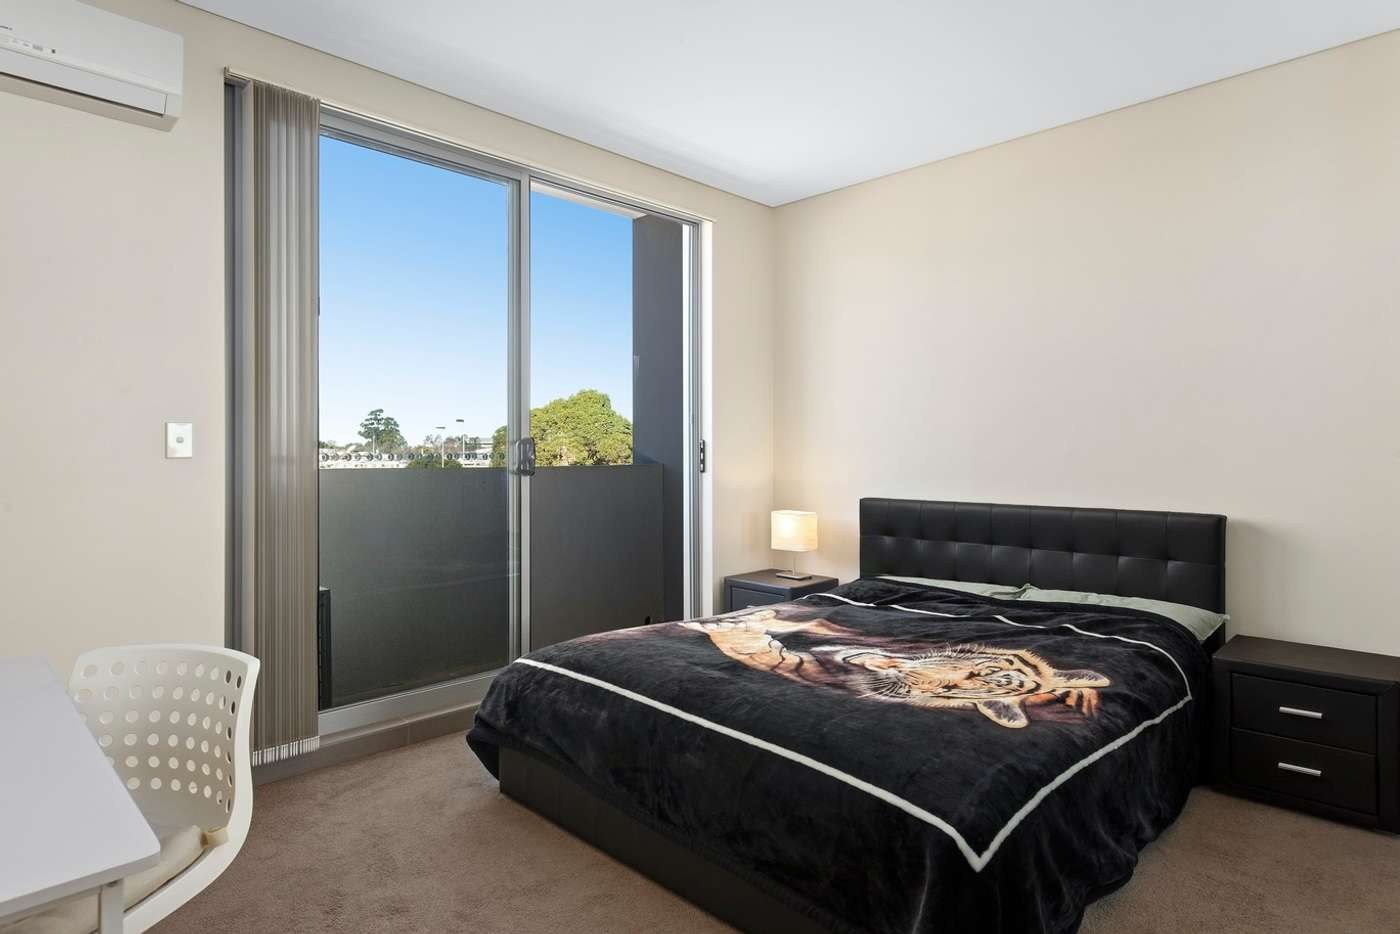 Fifth view of Homely apartment listing, 9/19-21 Enid Street, Granville NSW 2142